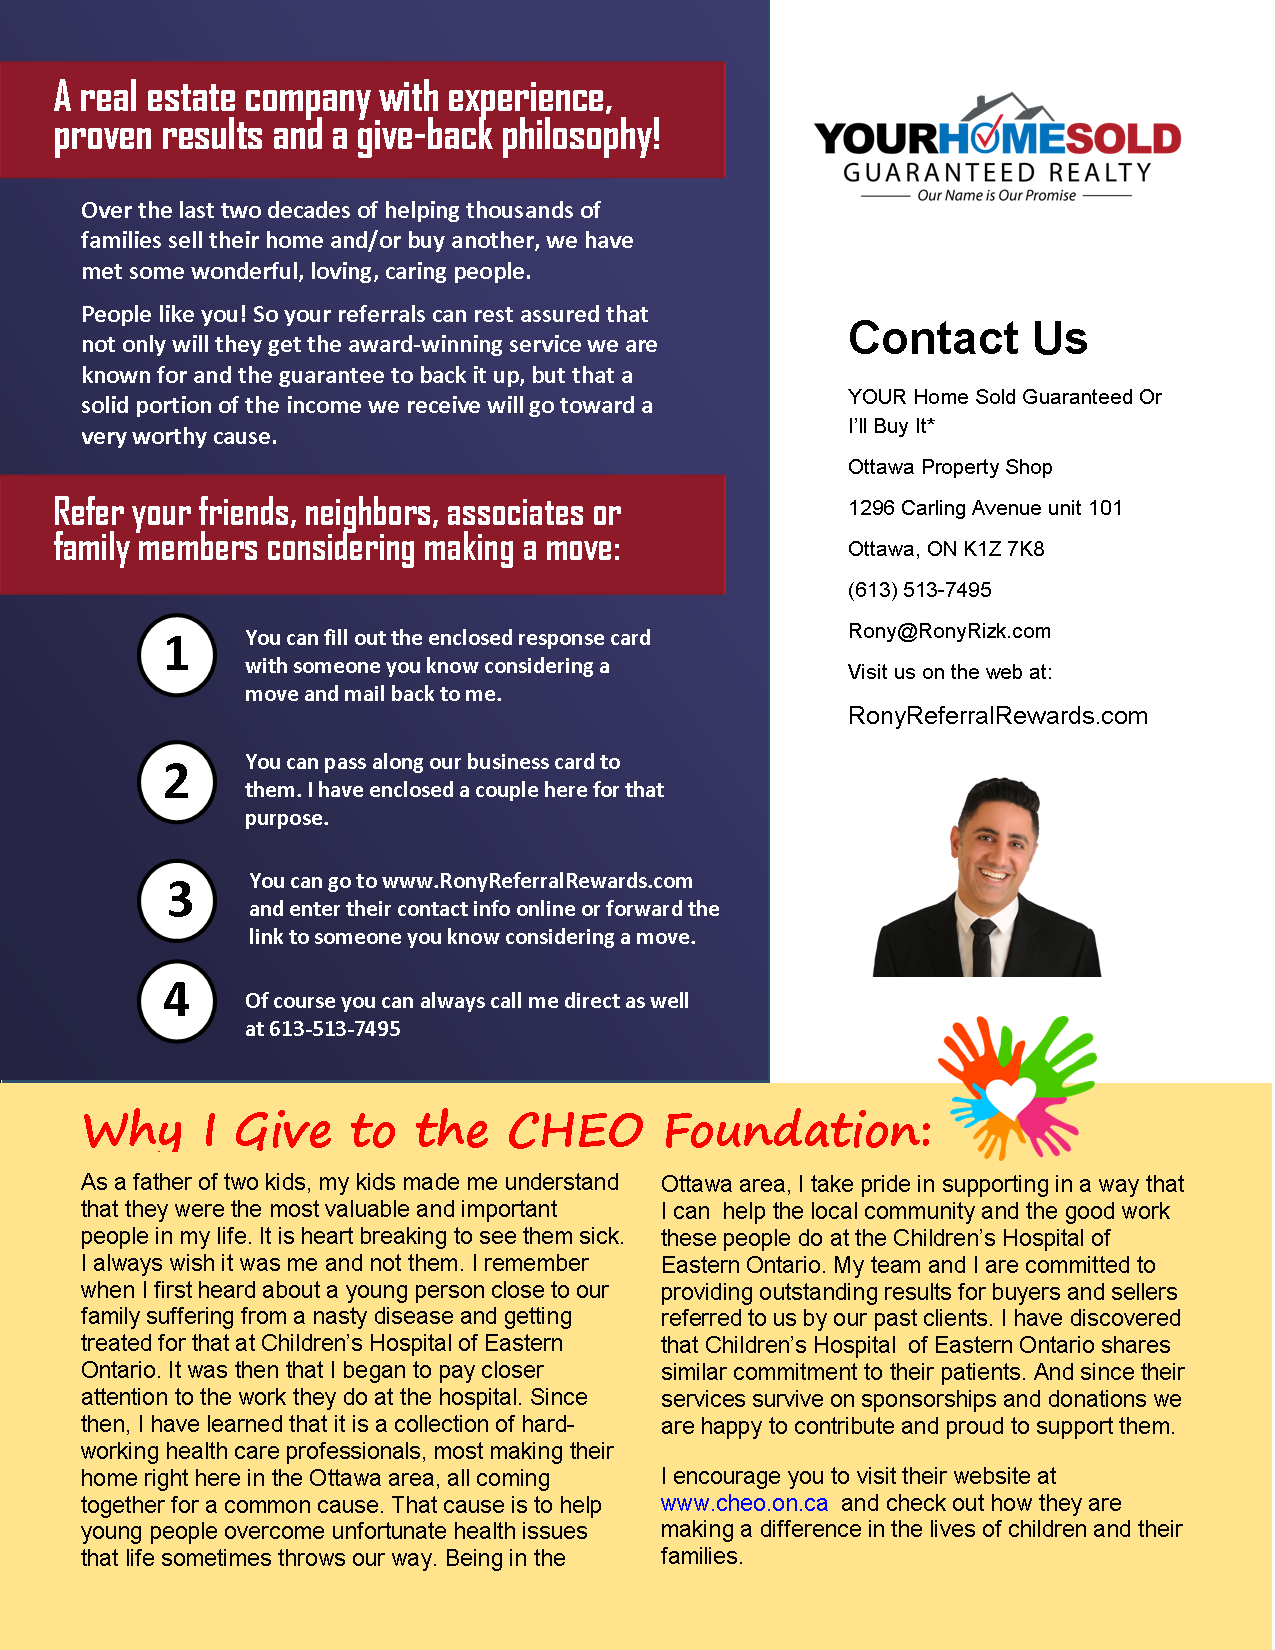 cp-platinum-referral-newsletter3.png